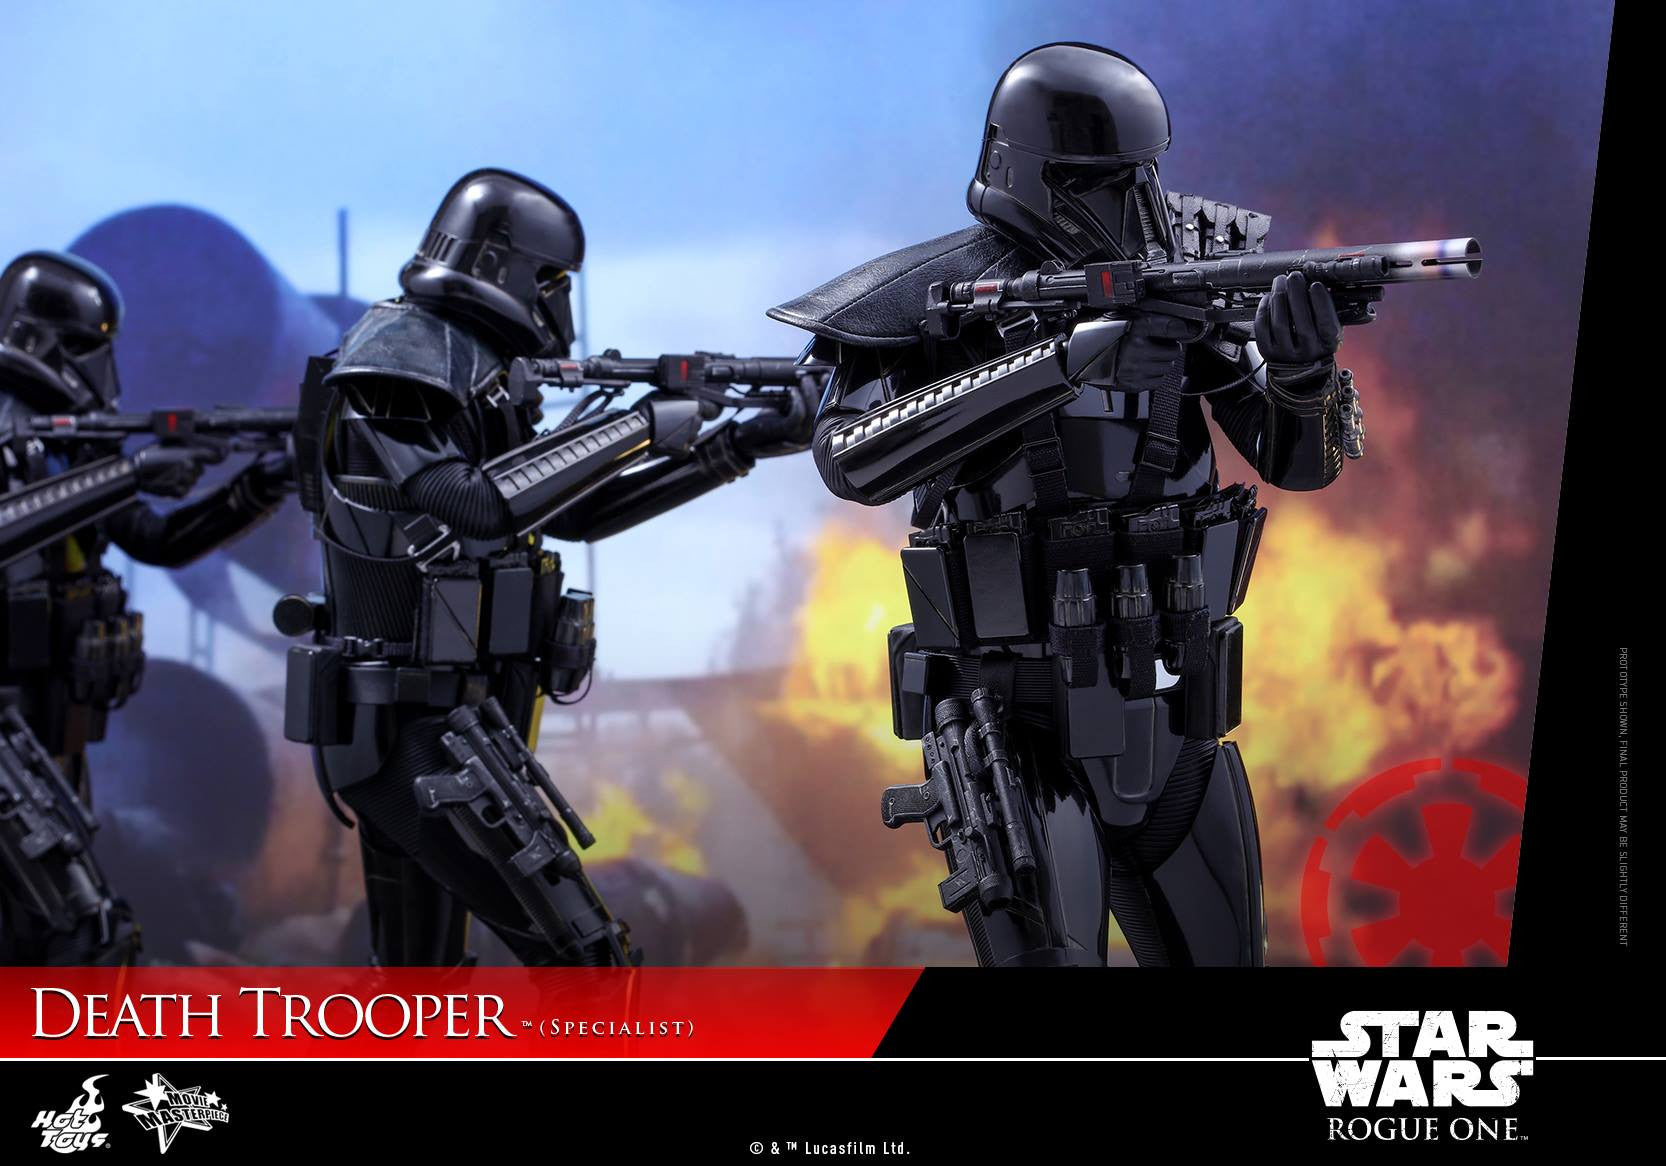 Hot Toys - MMS385 - Rogue One: A Star Wars Story - Death Trooper (Specialist) - Marvelous Toys - 10